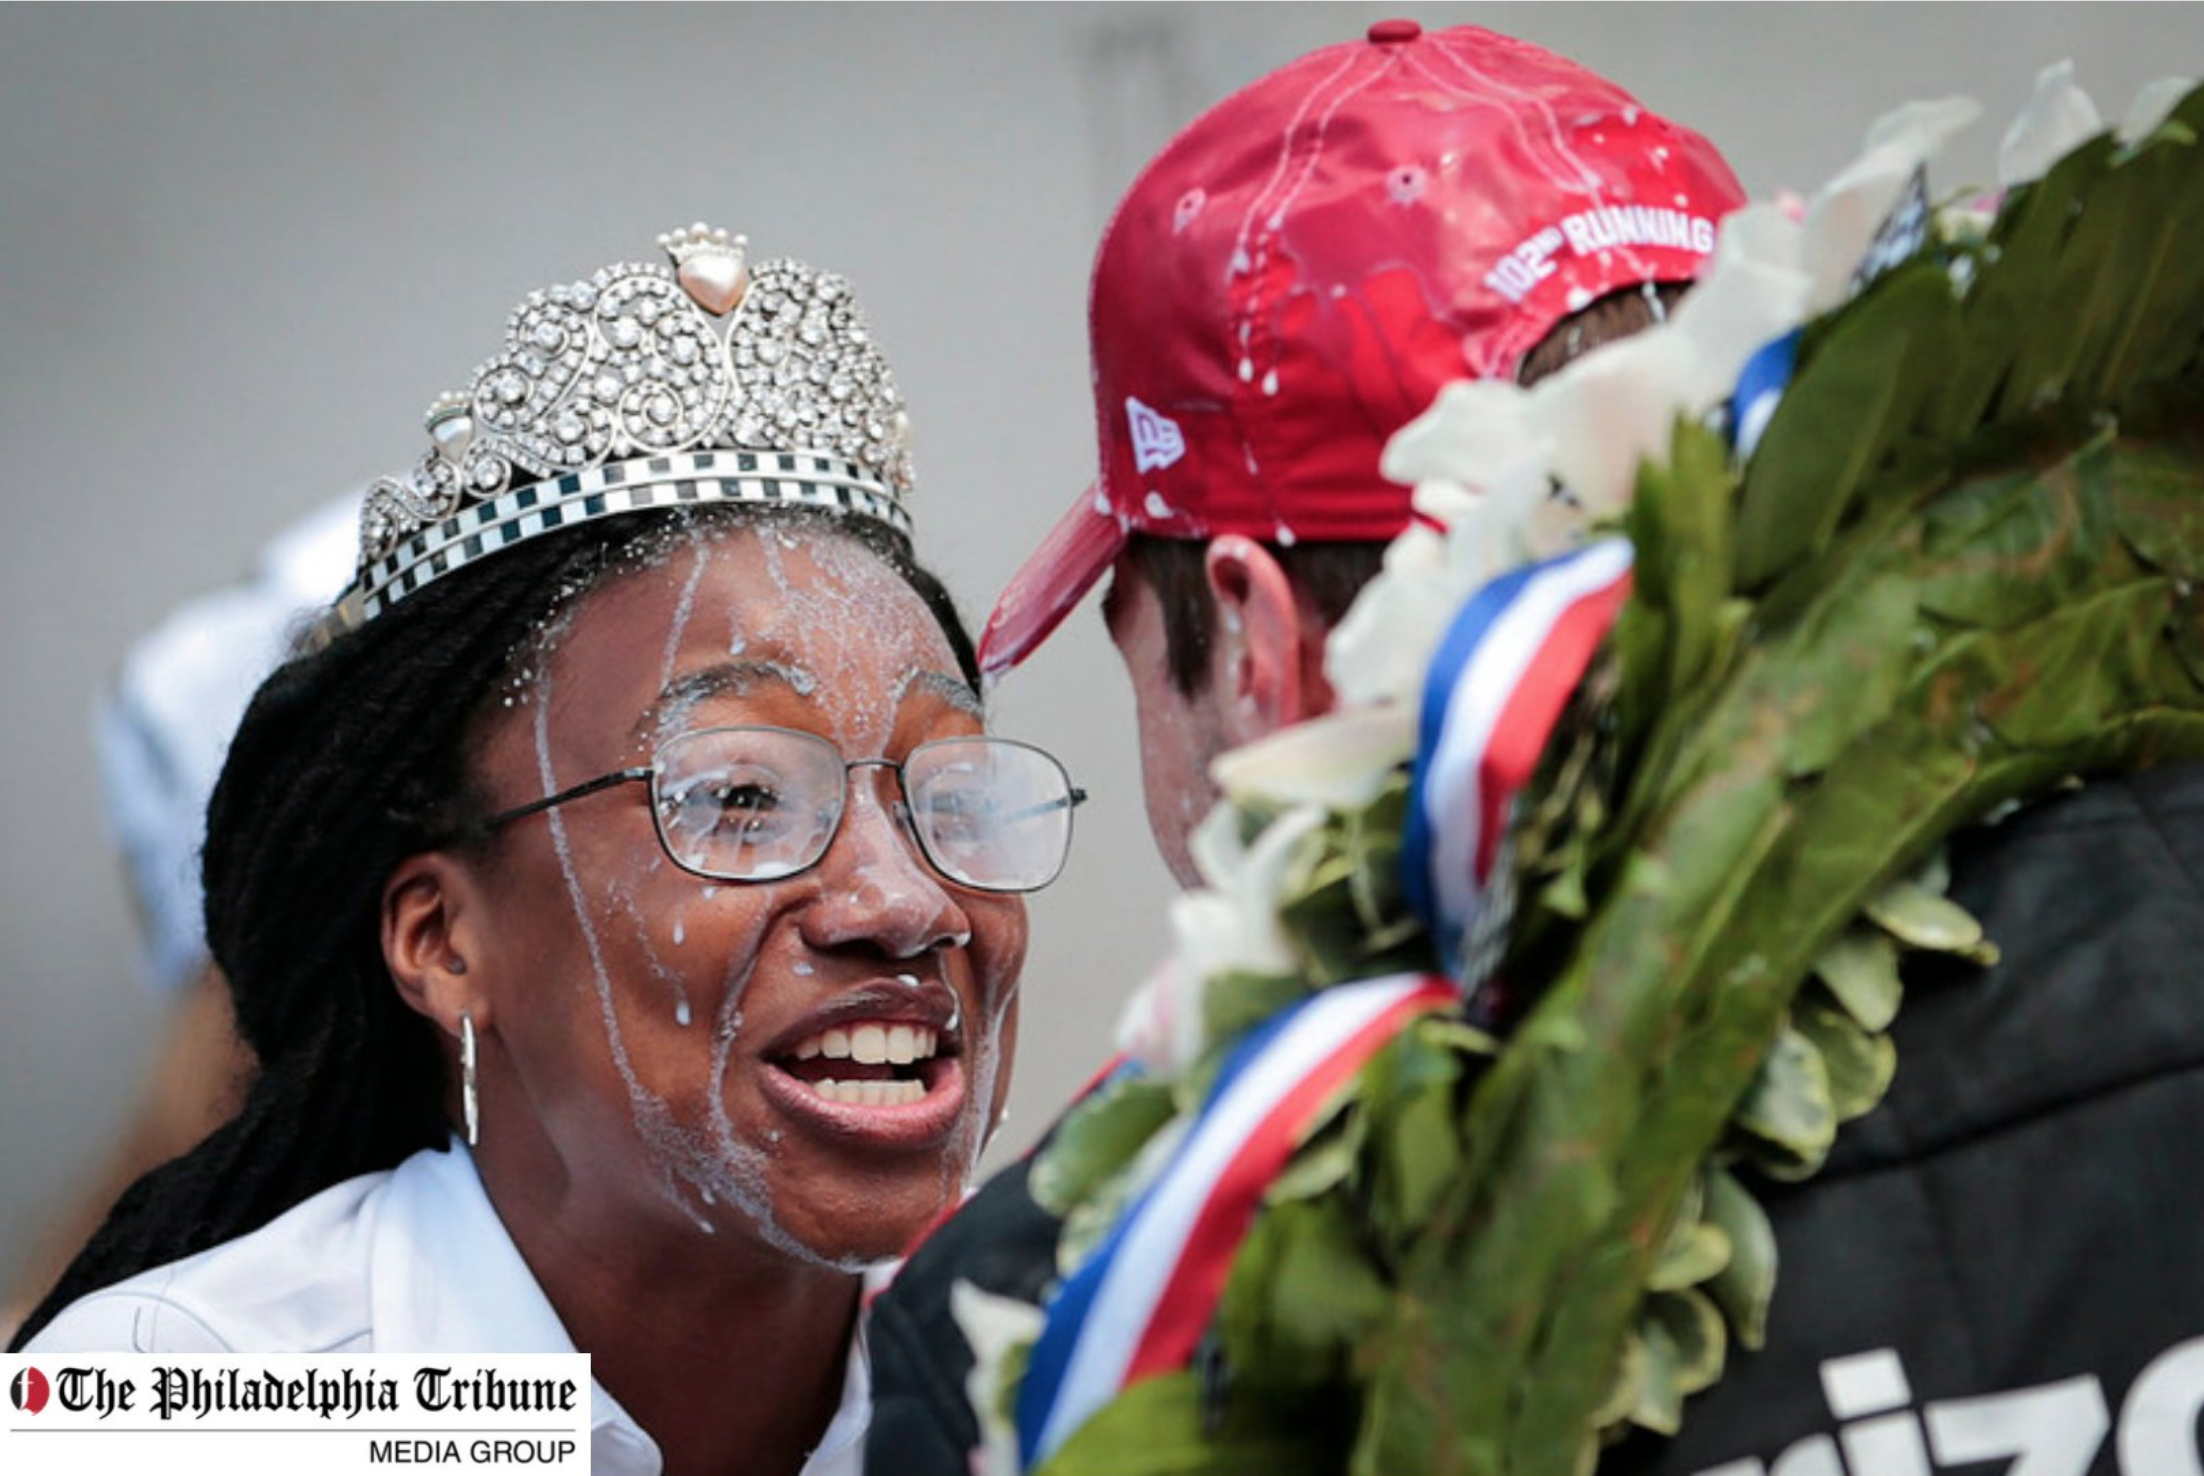 06/01/18 : Indy 500 festival queen takes victory splash with driver